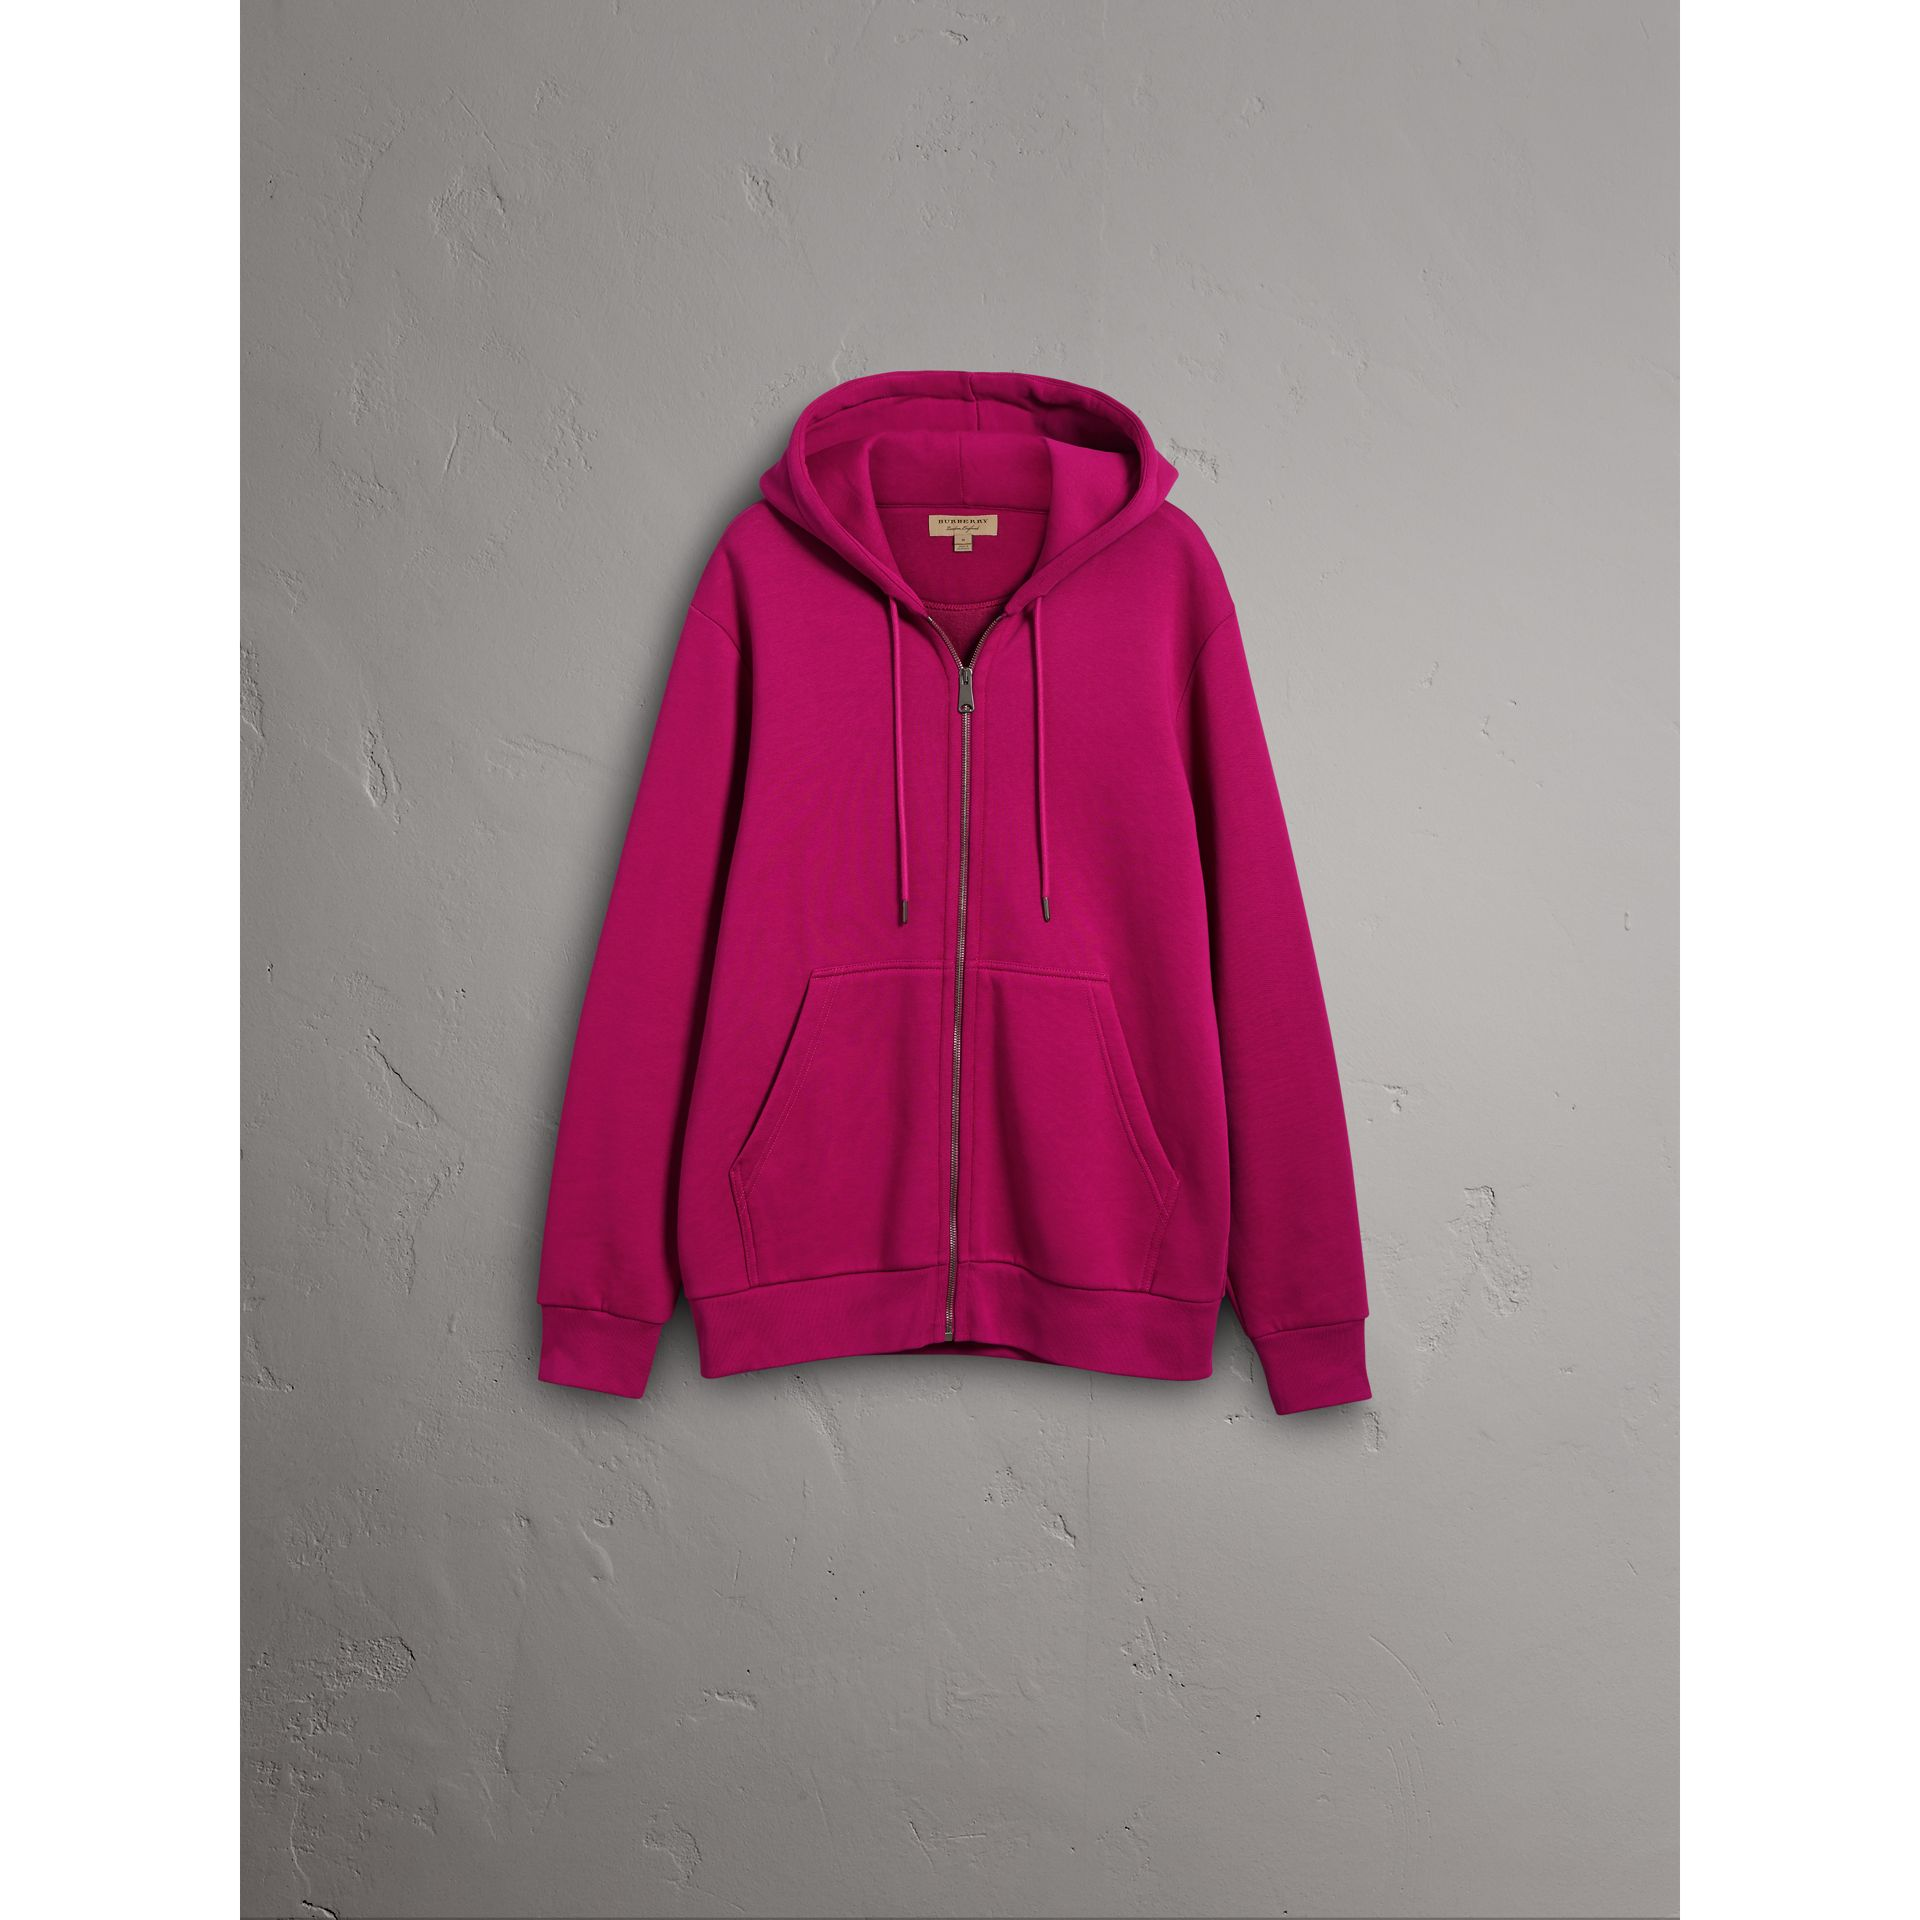 Cotton Jersey Zip-front Hooded Top in Bright Fuchsia - Men | Burberry - gallery image 1